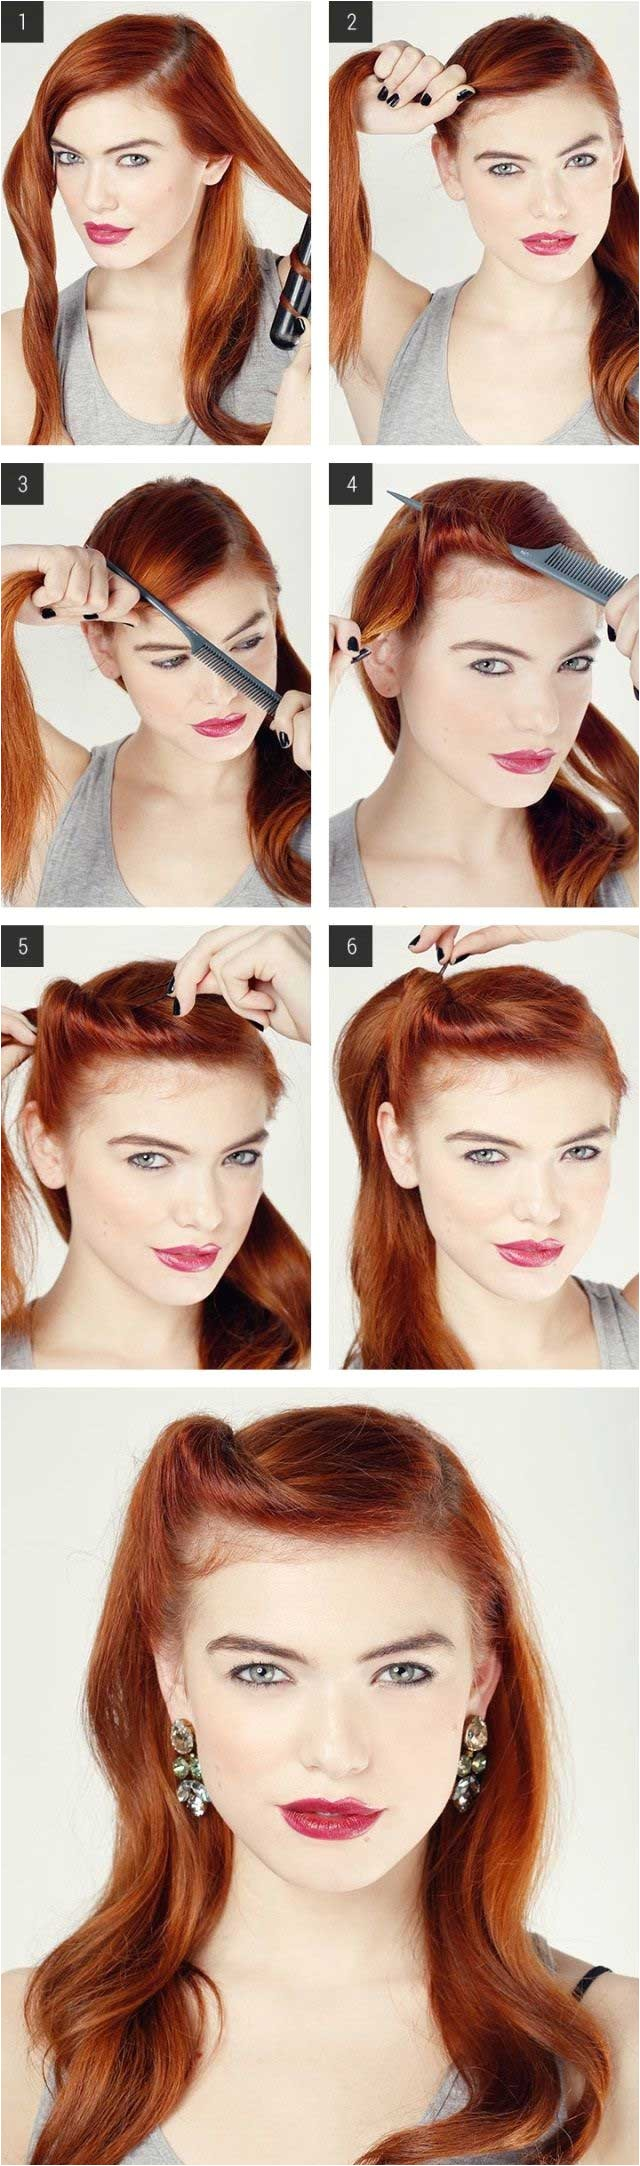 easy retro hair tutorial